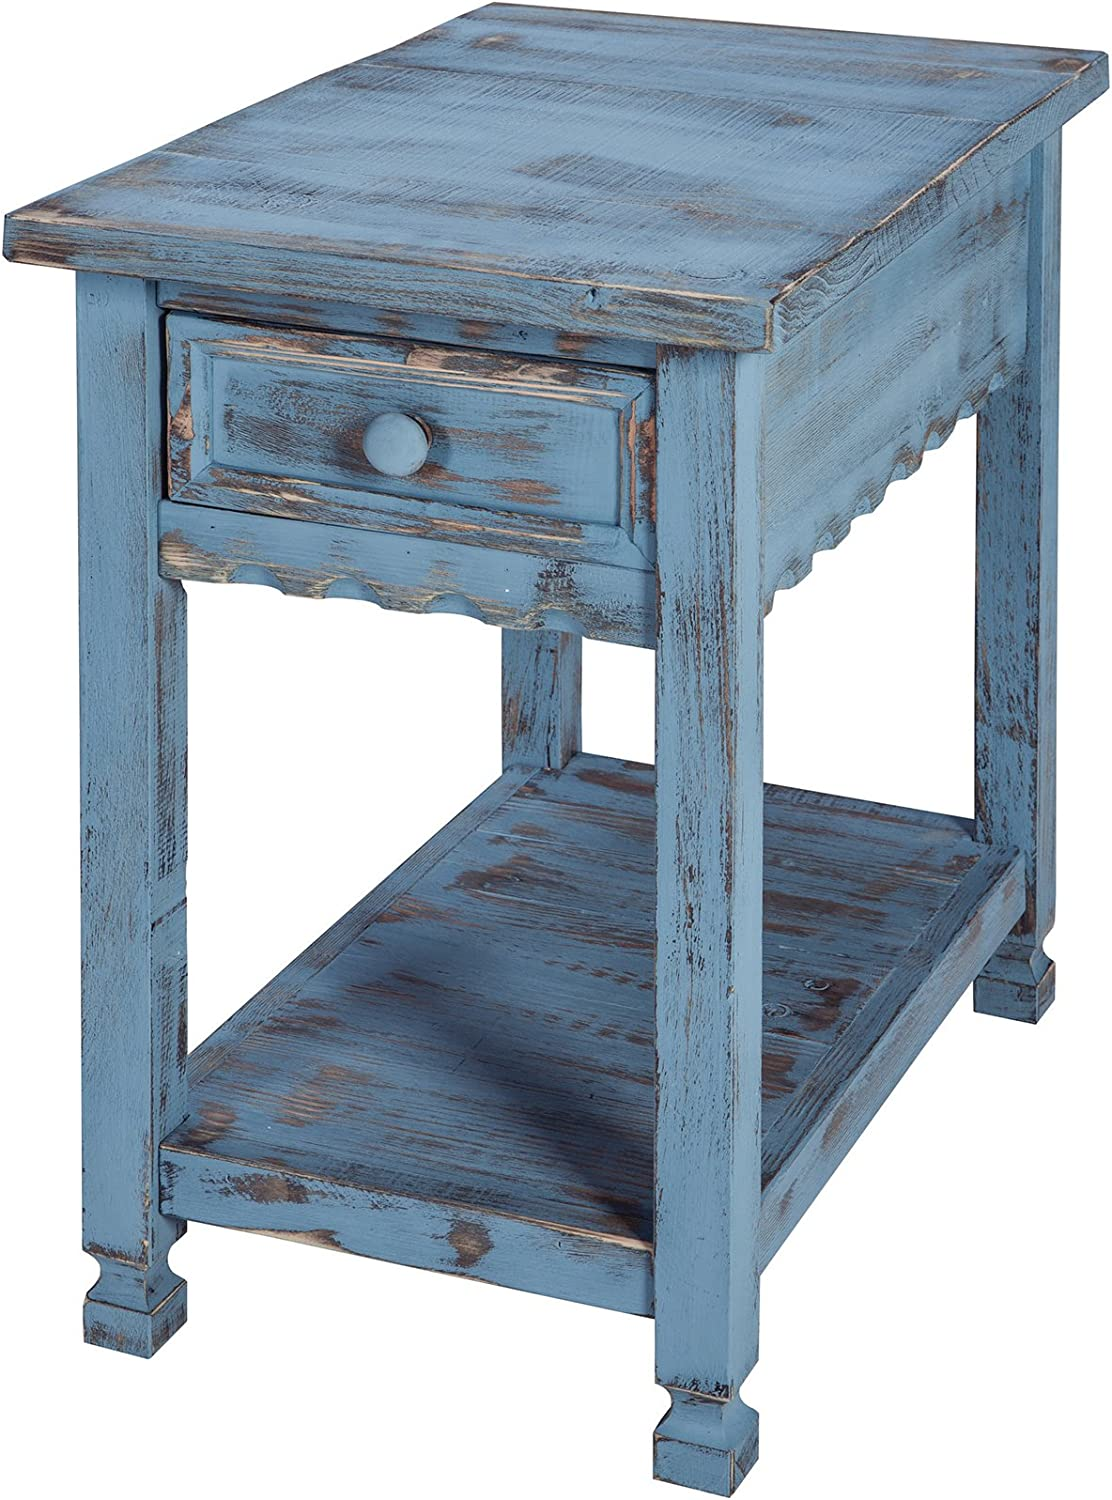 Rustic Cottage Chairside End Table with 1 Drawer and 1 Shelf, Blue Antique